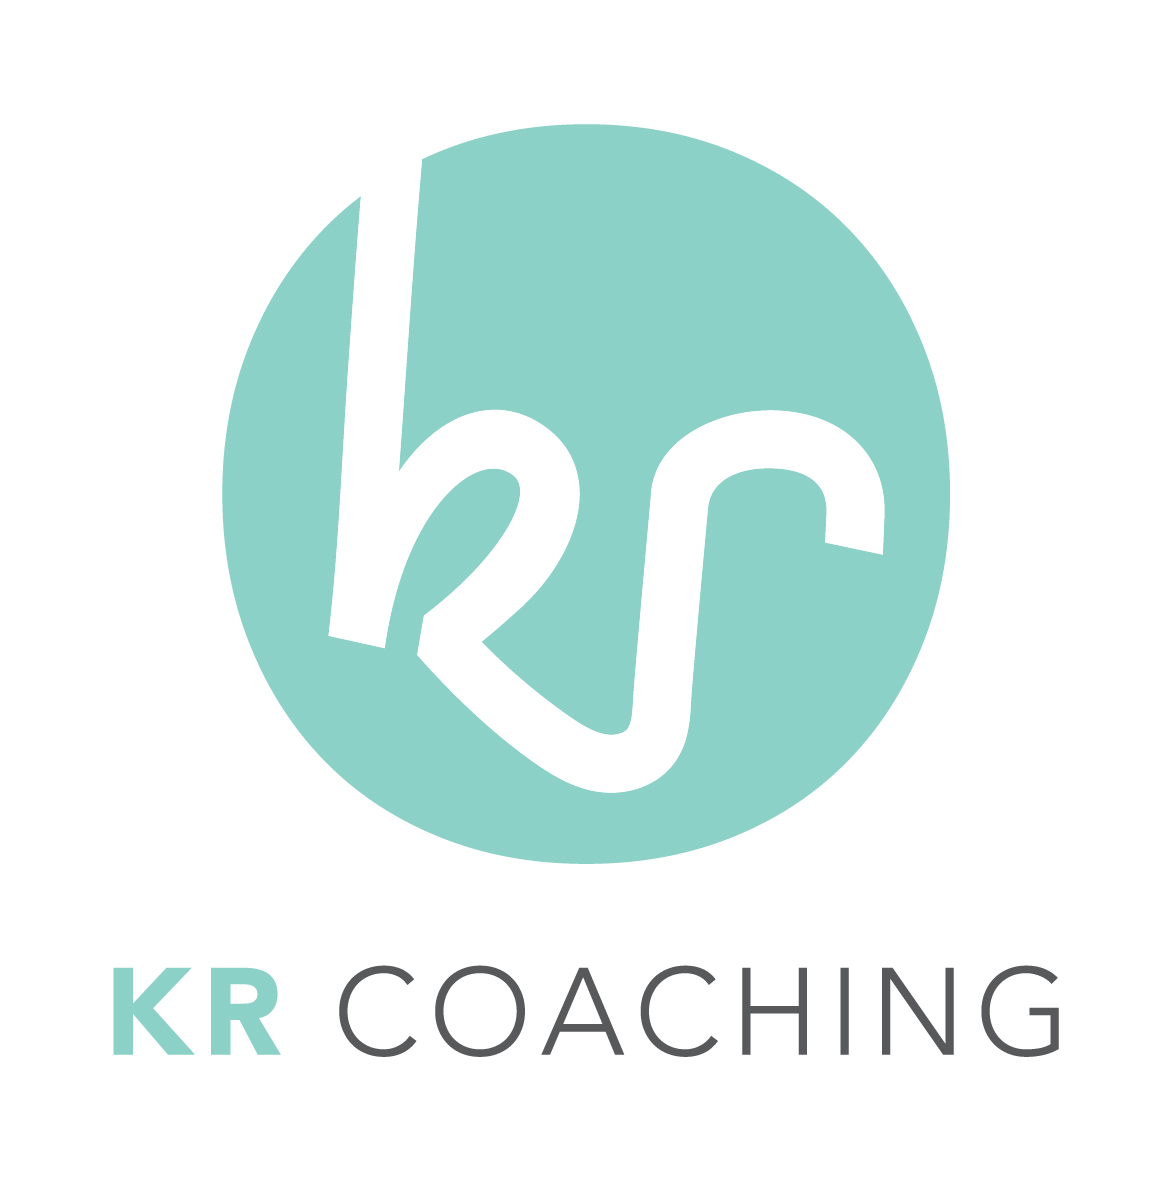 KR Coaching